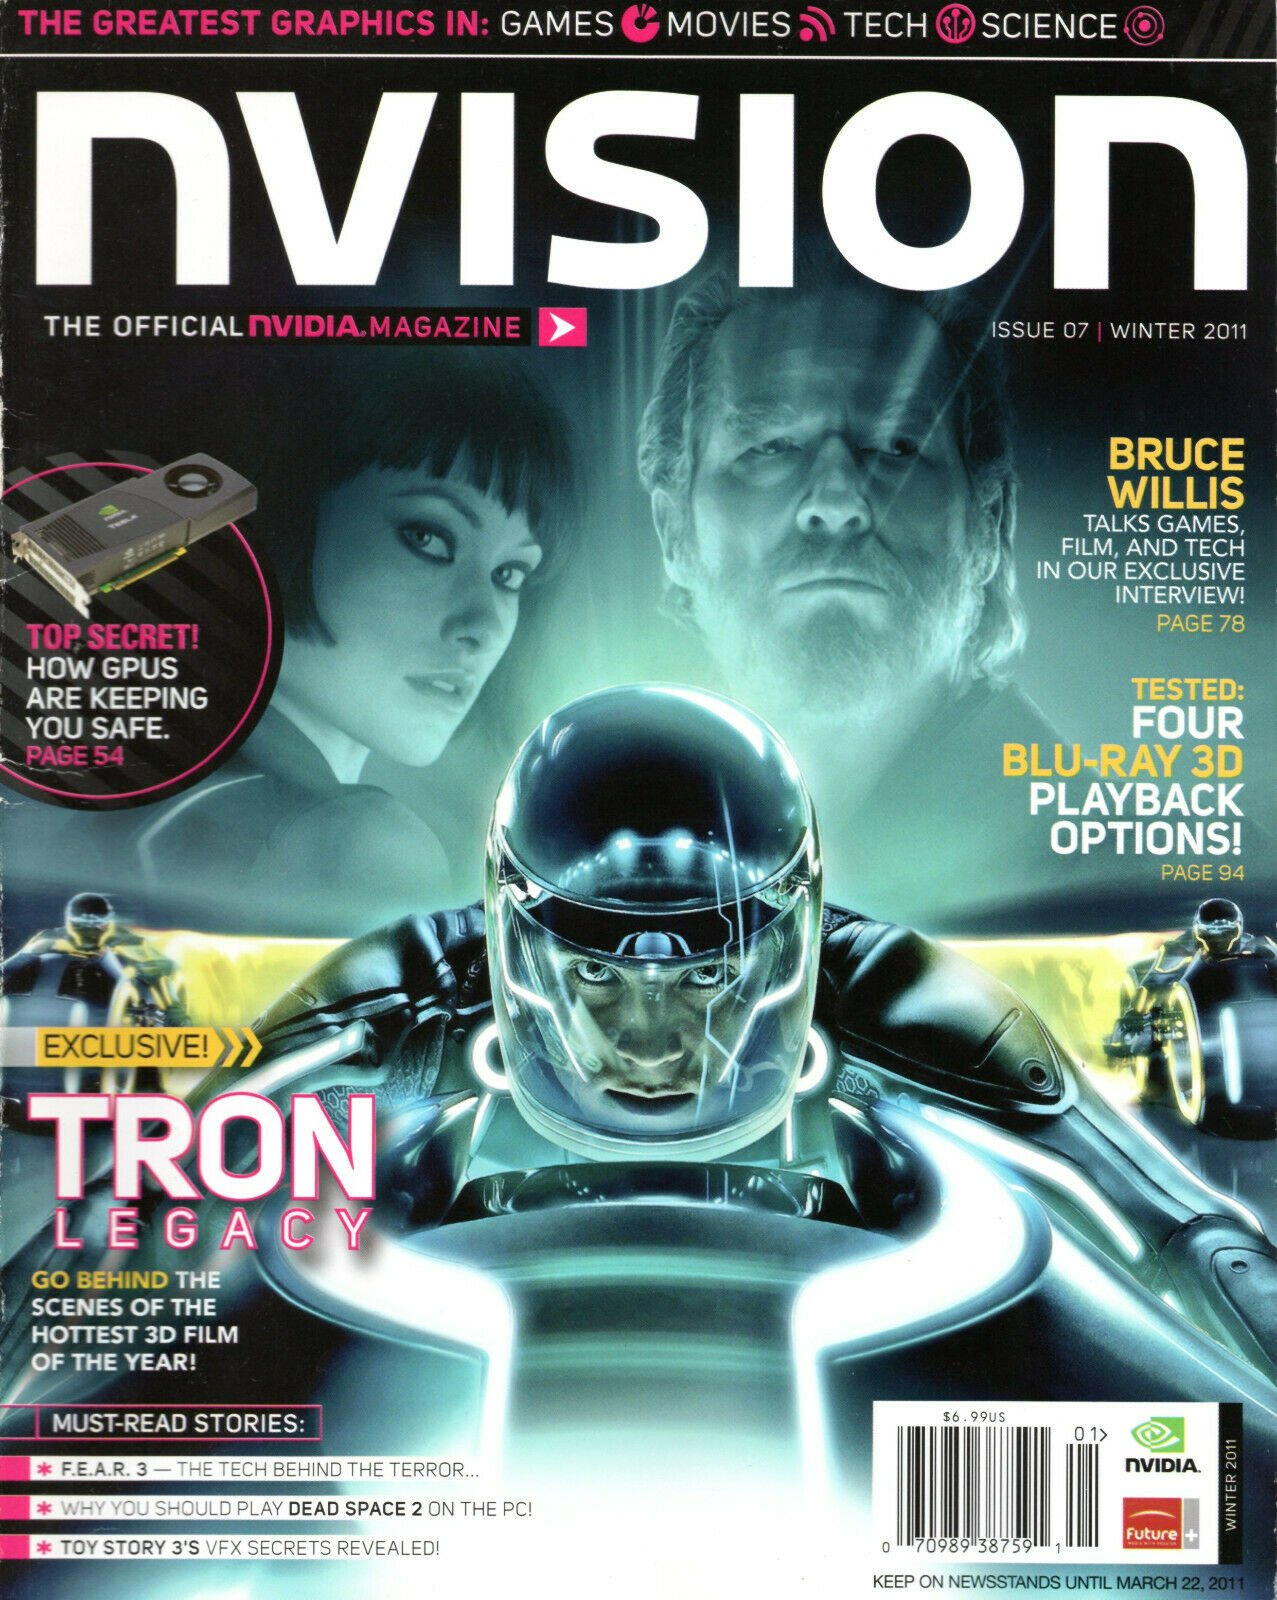 nVision Issue 7 (Winter 2011)